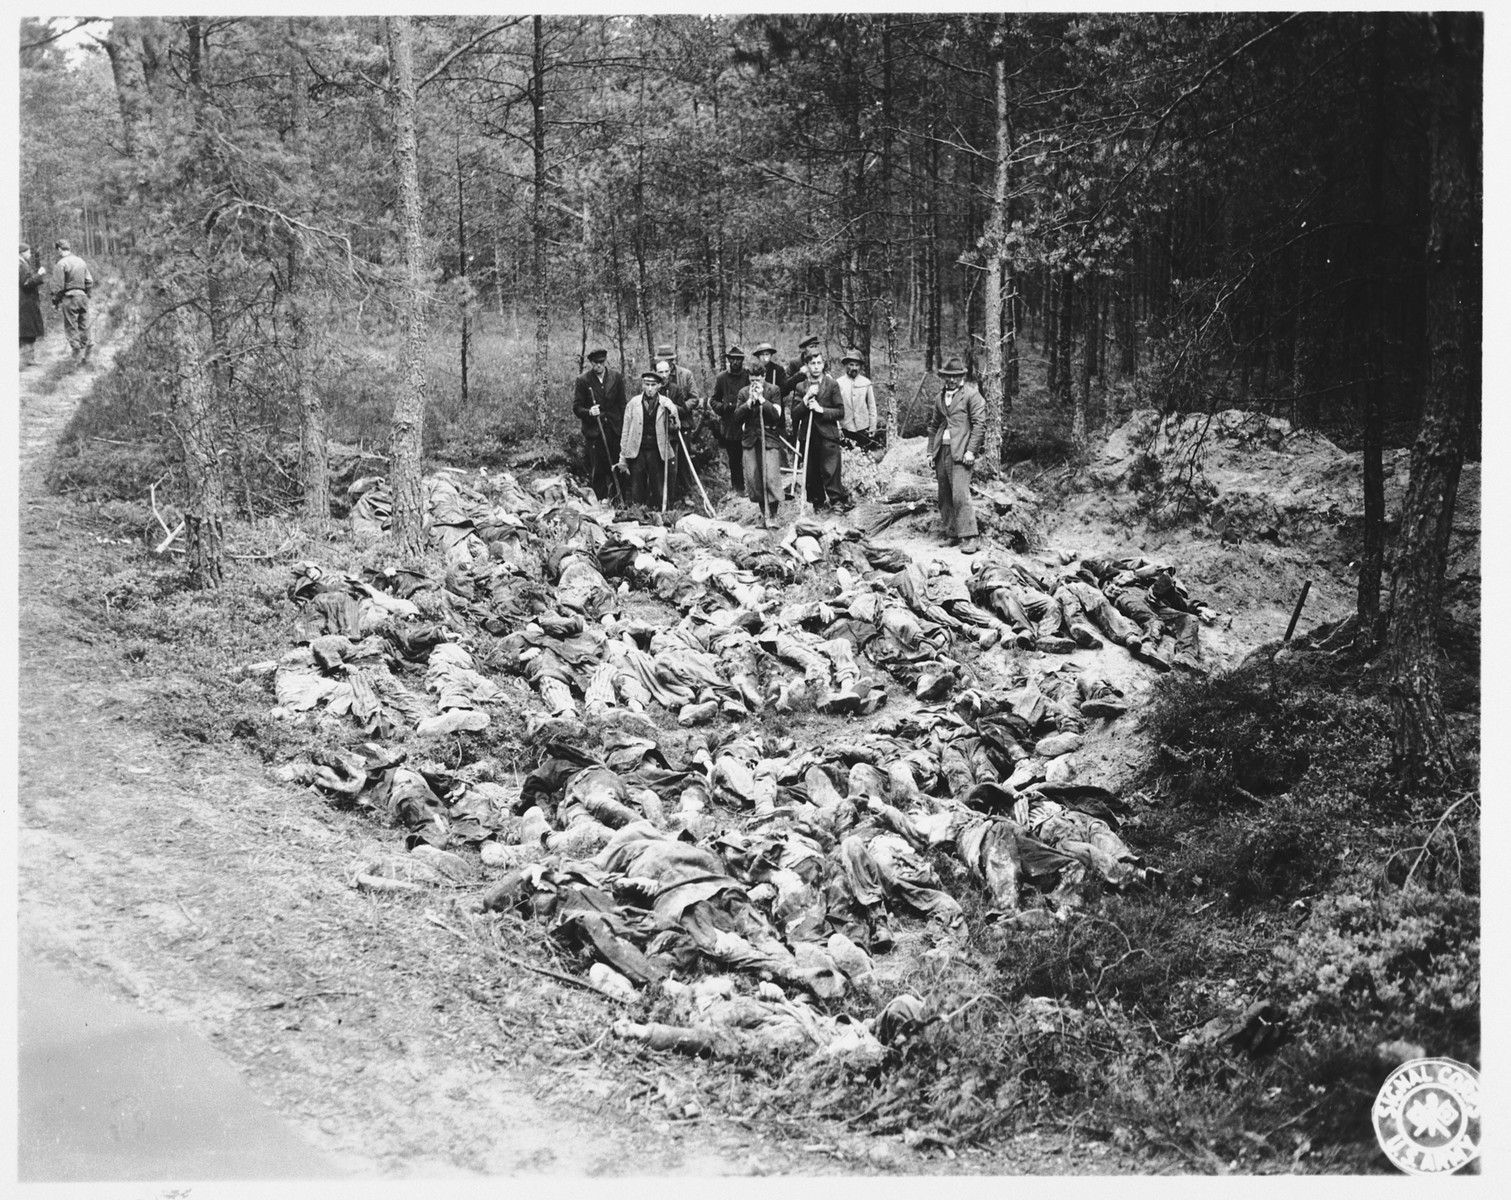 A group of German civilians stand with their shovels among the corpses of Nazi victims they have just exhumed from a mass grave in Stamsried, Germany.  (Photograph taken by the 166th Signal Corps Company.)